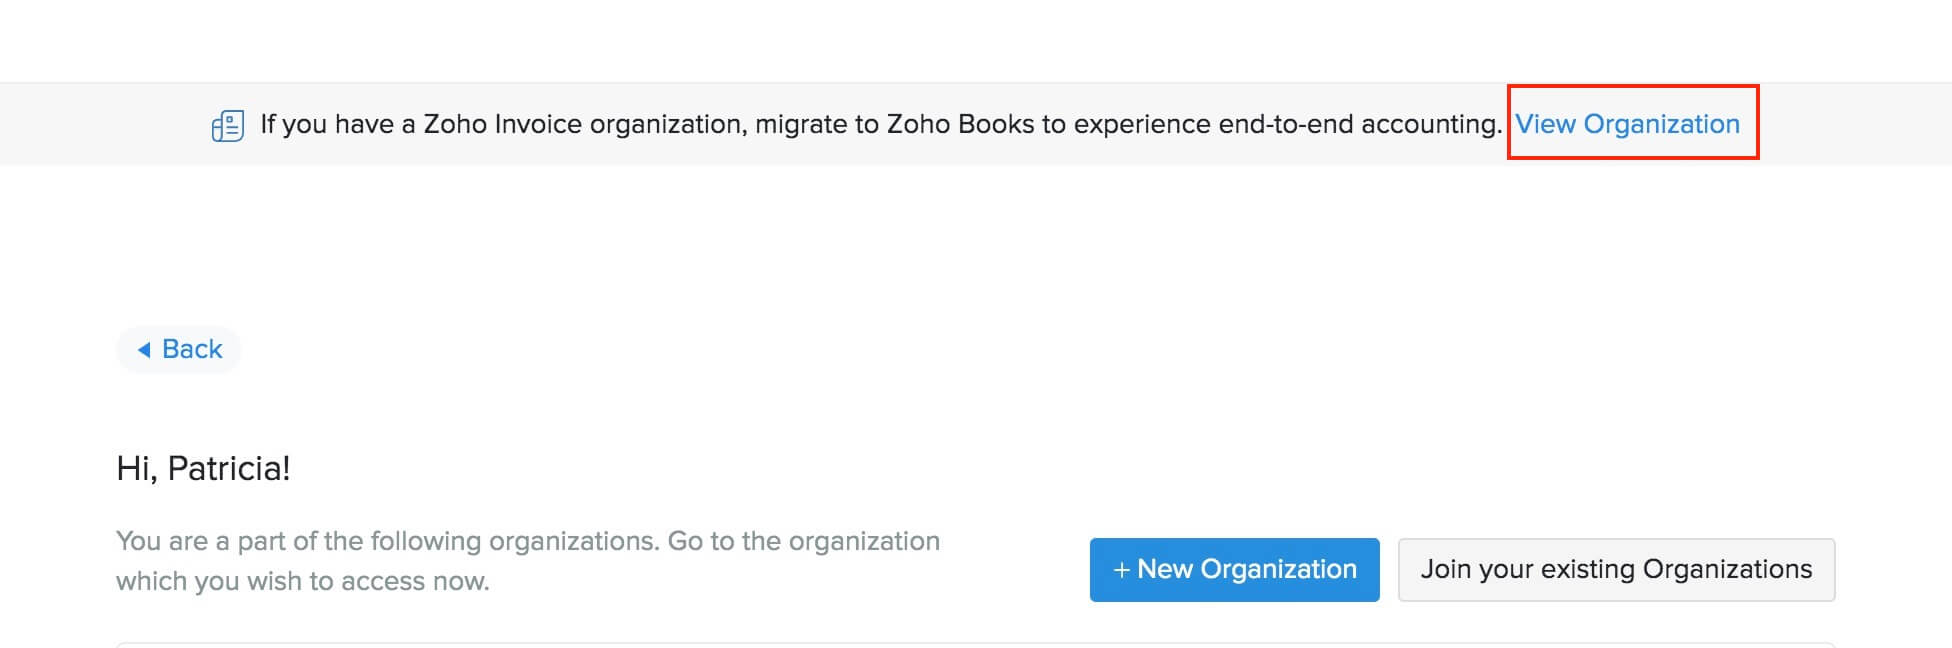 Upgrade to Zoho Books